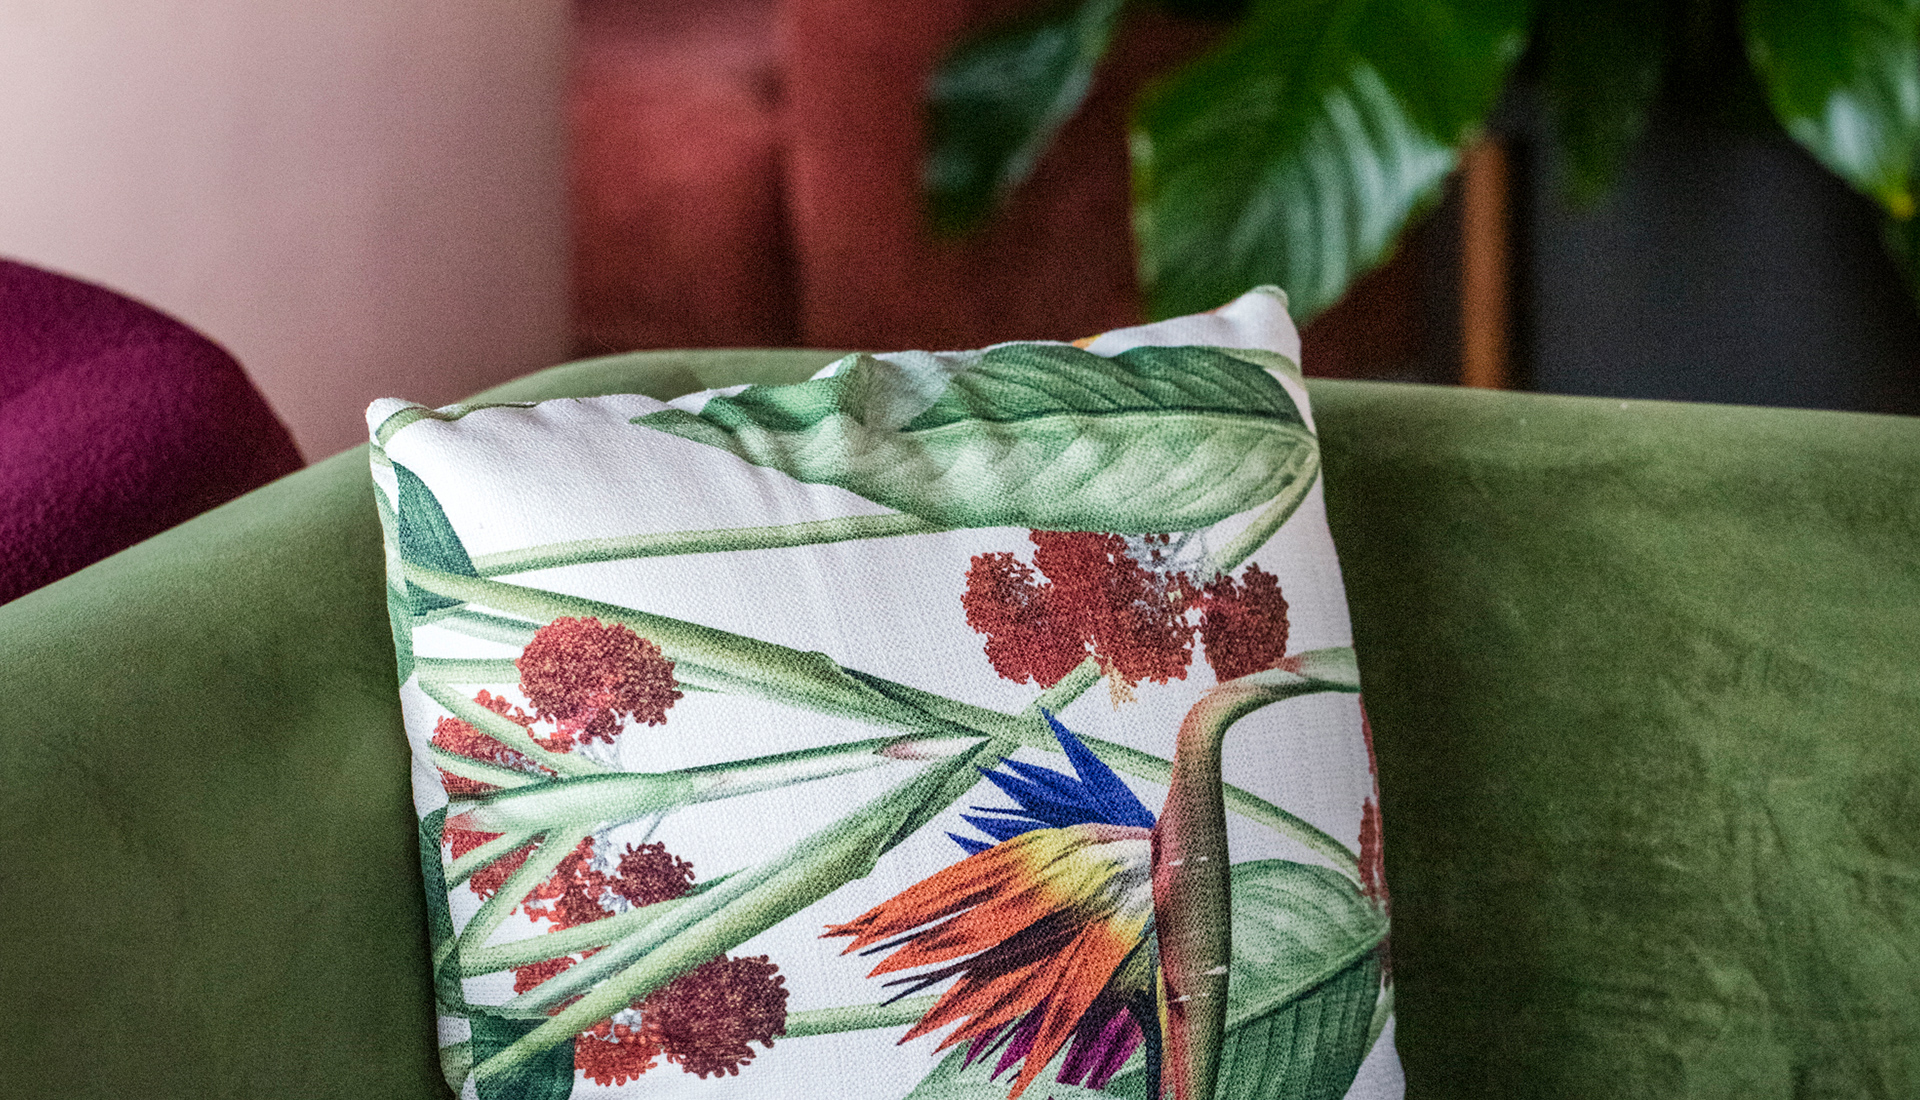 plant printed pillow on a green velvet sofa